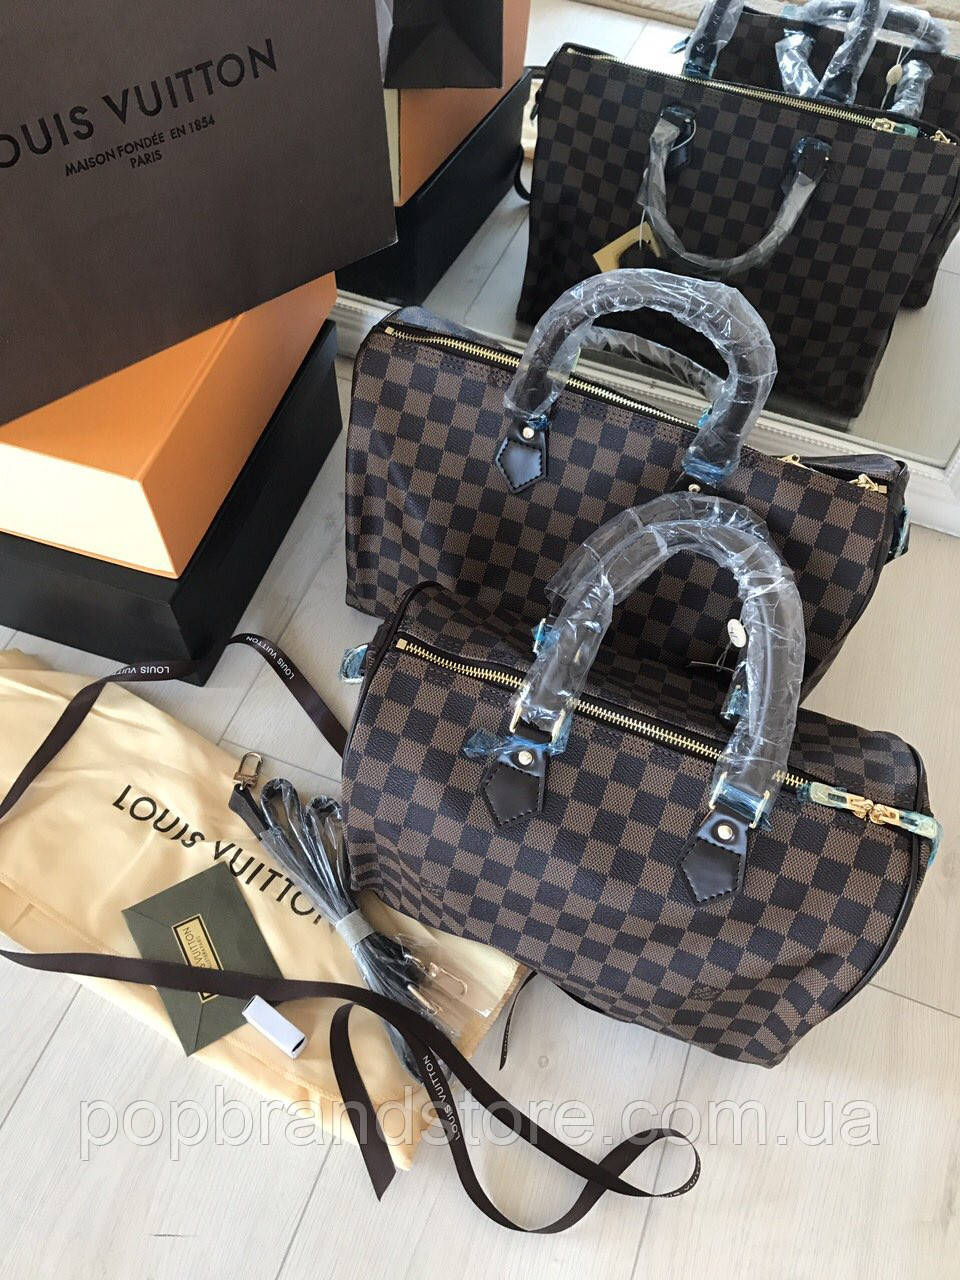 70a26674c5be Стильная женская сумка LOUIS VUITTON SPEEDY DAMIER 30 см (реплика) - Pop  Brand Store